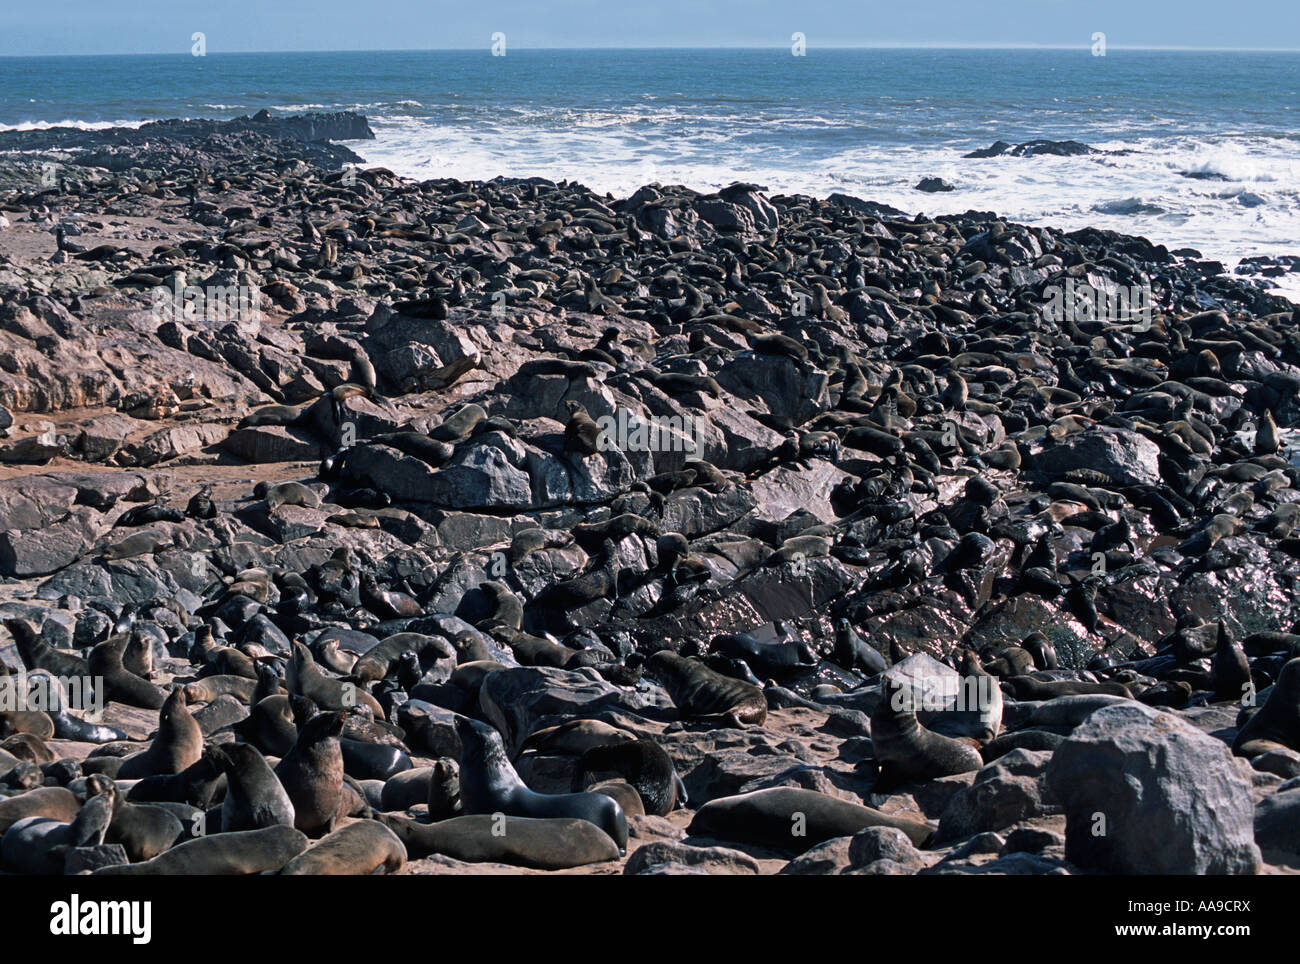 Cape Fur Seals During mating seasons thousands of seals can be seen sprawled across the beaches at Cape Cross Namibia - Stock Image